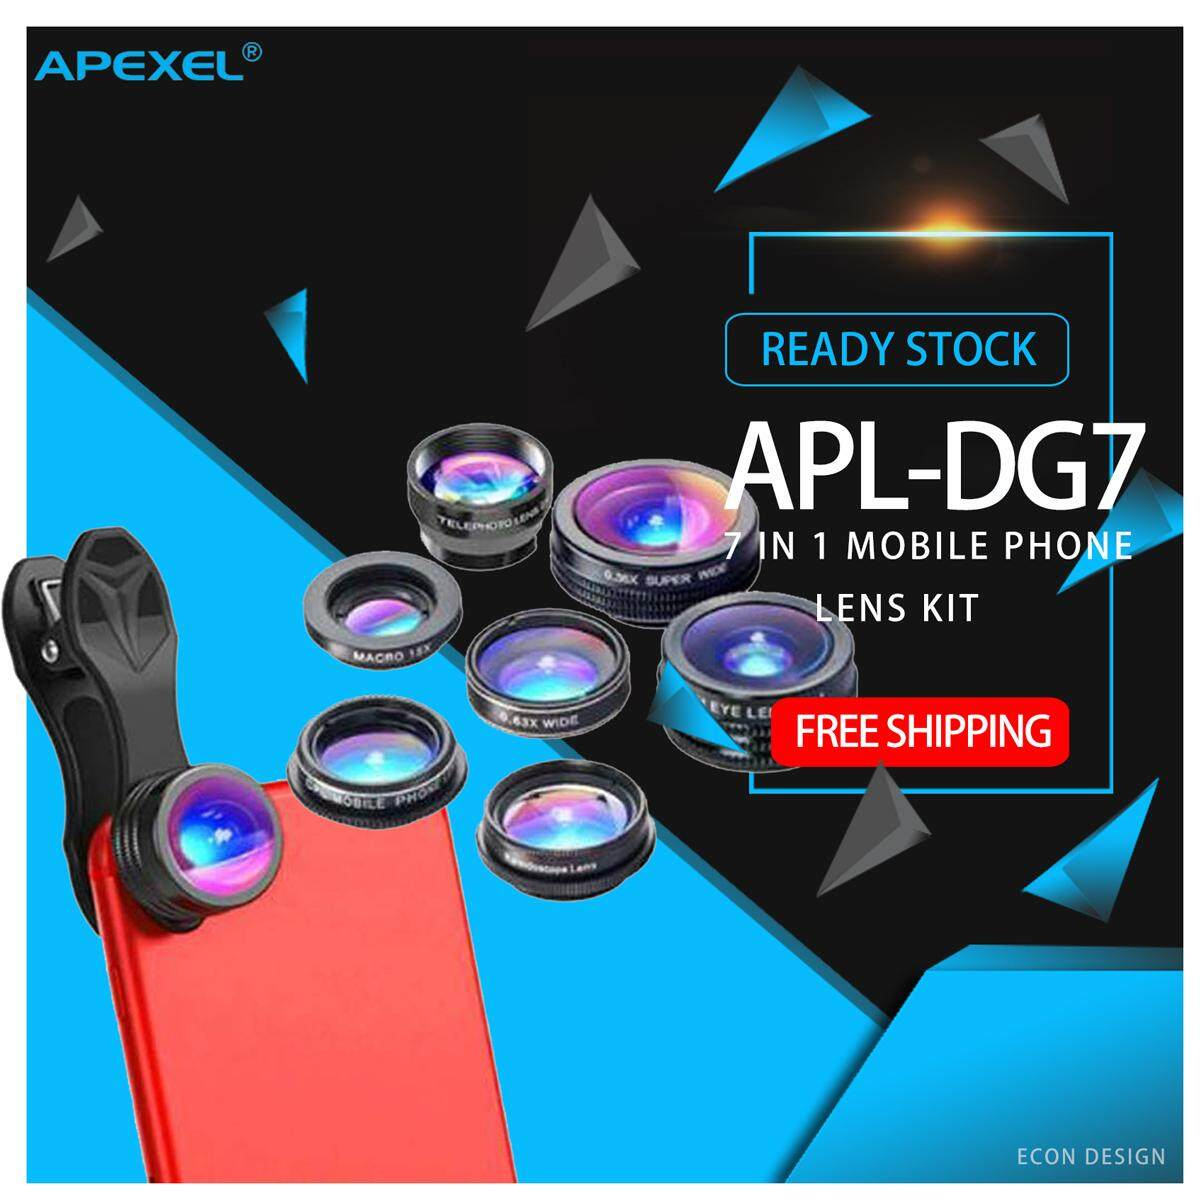 Apexel 7 in 1 mobile phone Lens Kit 0.36X Wide Angle Macro Lens CPL 2X Telescope camera Lens (APL-DG7) samsung apple iphone huawei xiaomi vivo oppo photo video travel portable